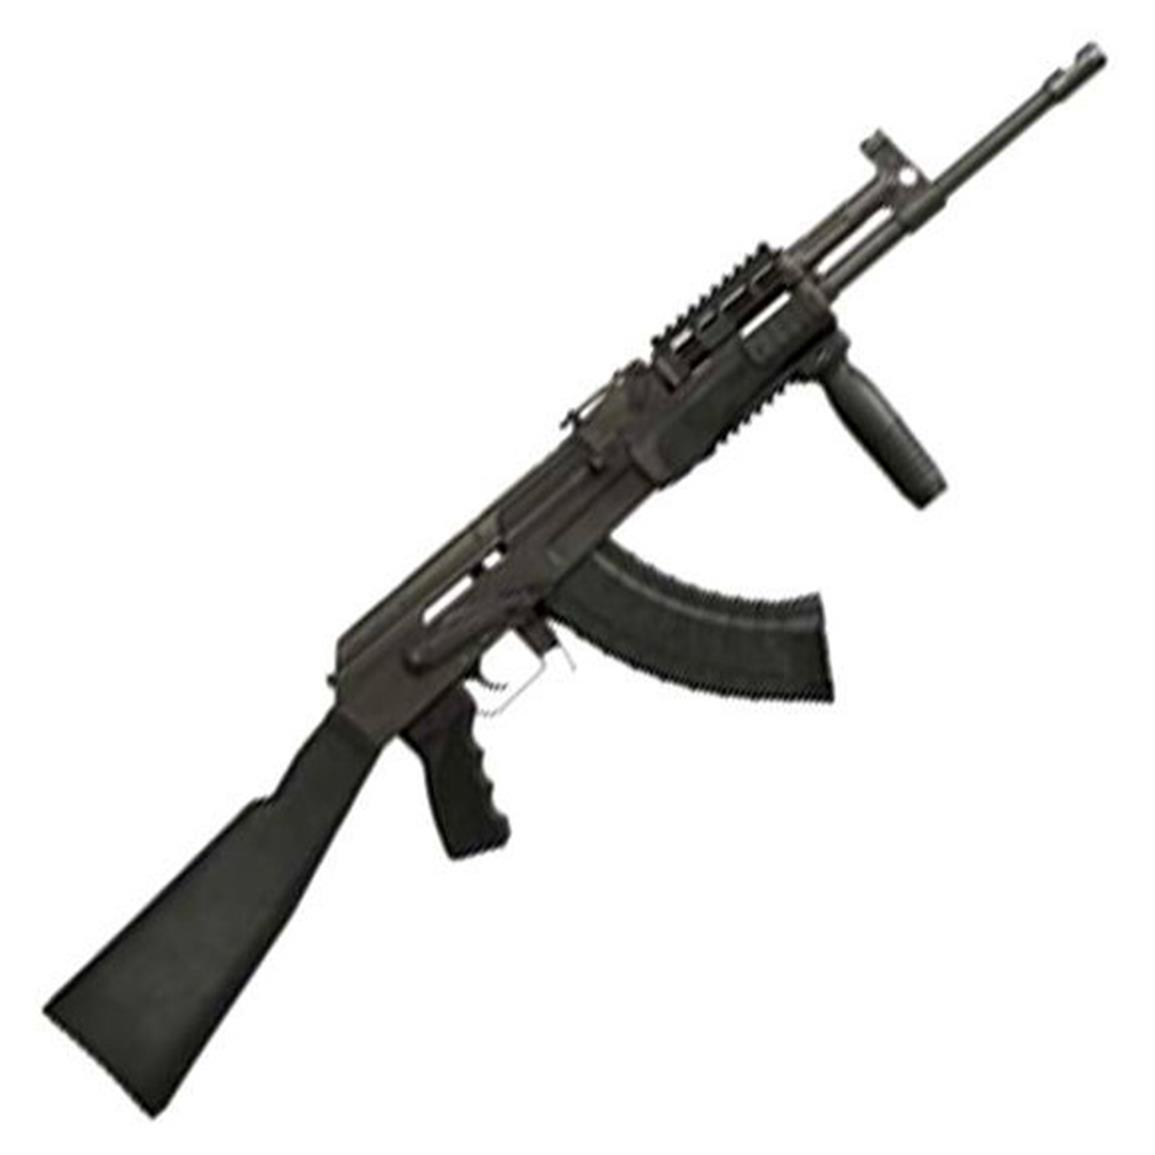 Century Arms Centurion 39 Tactical, Semi-automatic, 7.62x39mm, RI2167N, 787450231283, 16.25 inch Barrel